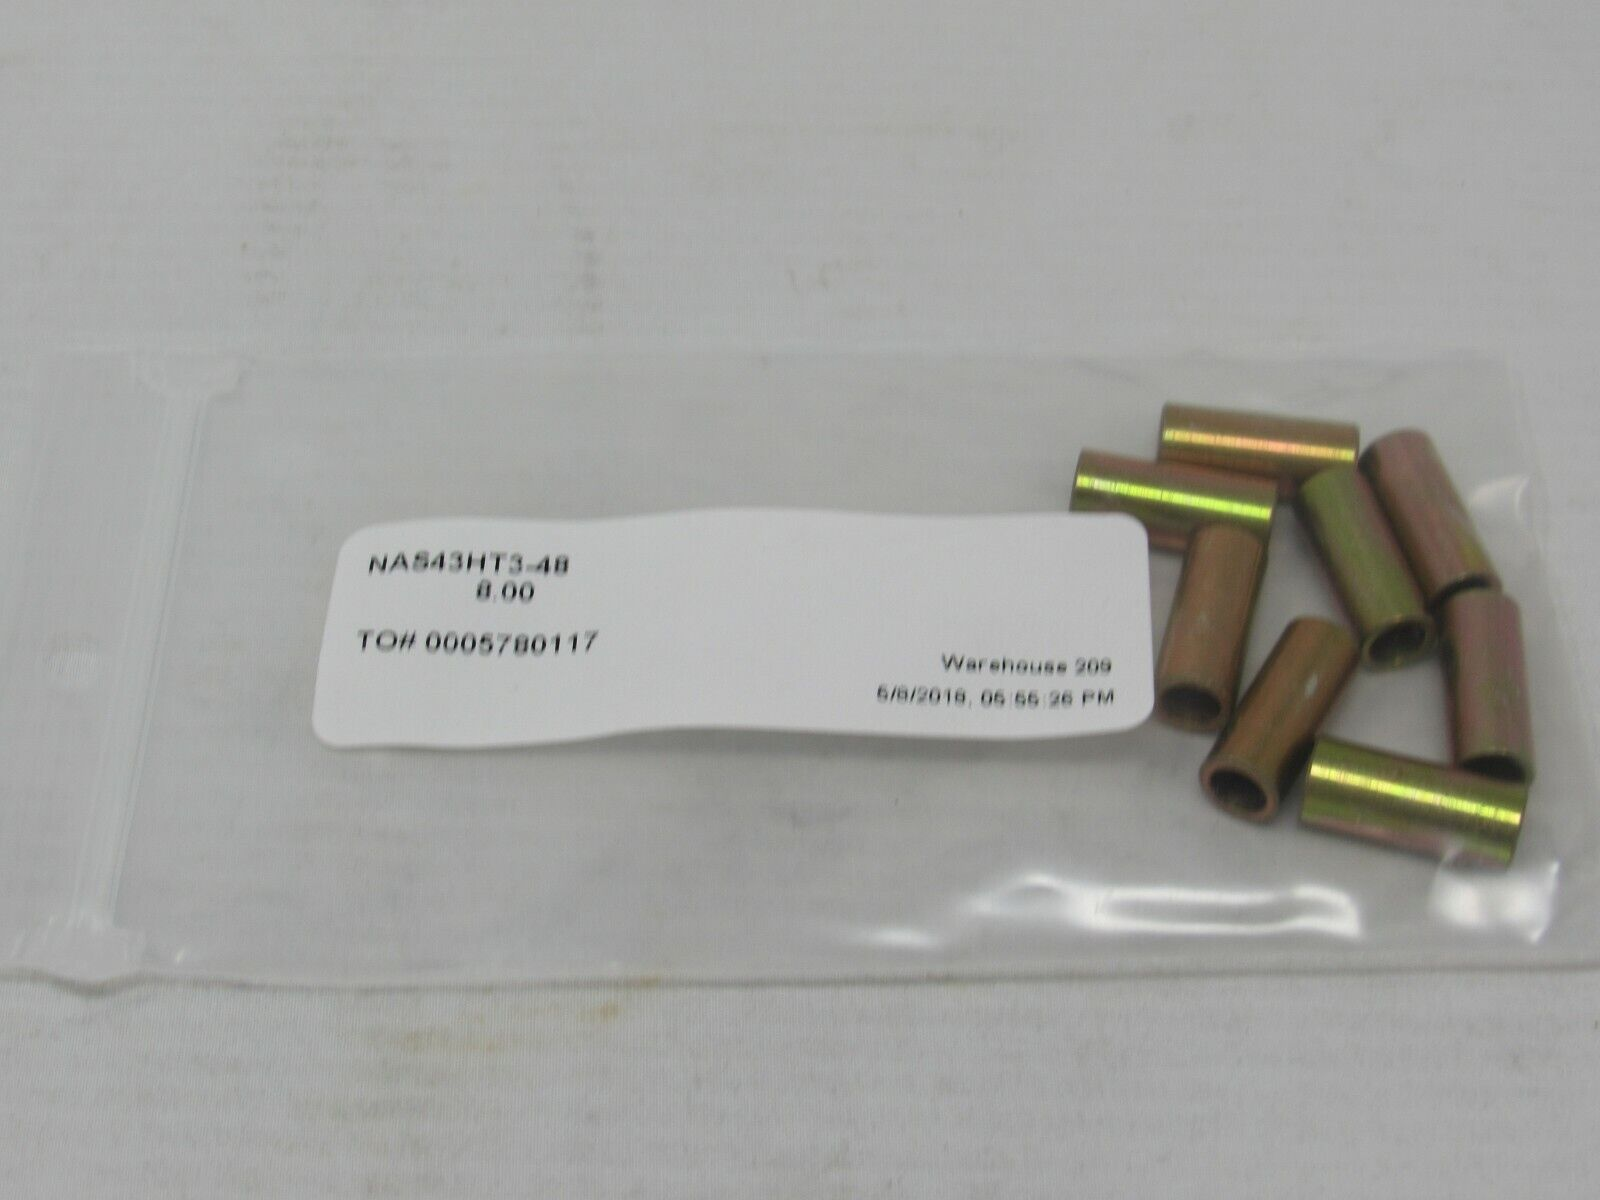 Spacer Sleeve, Lot of 8 #NAS43HT3-48